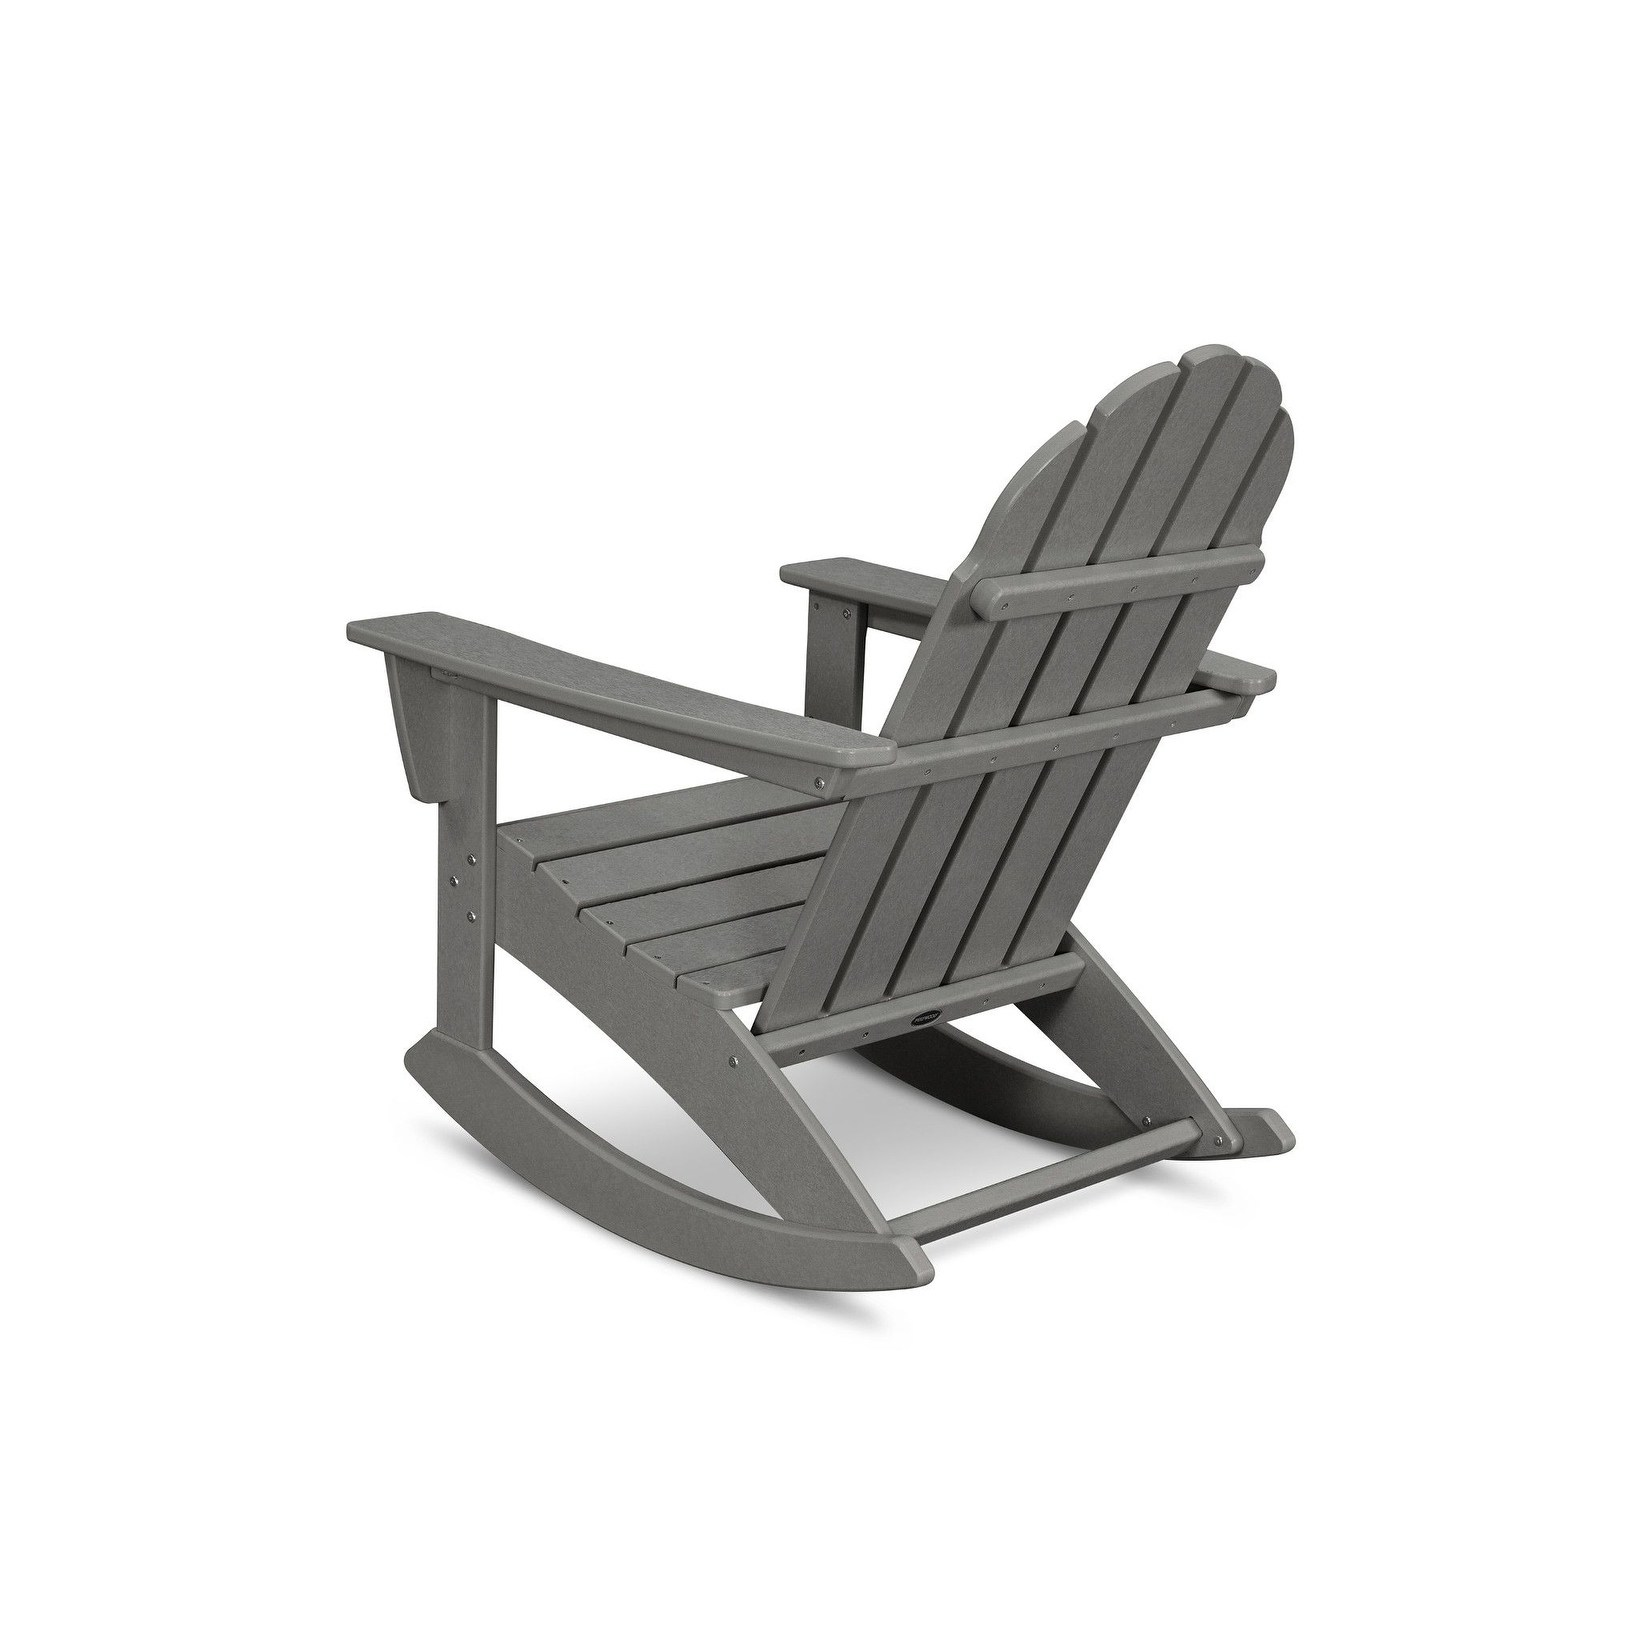 Magnificent Polywood Vineyard Outdoor Adirondack Rocking Chair Caraccident5 Cool Chair Designs And Ideas Caraccident5Info